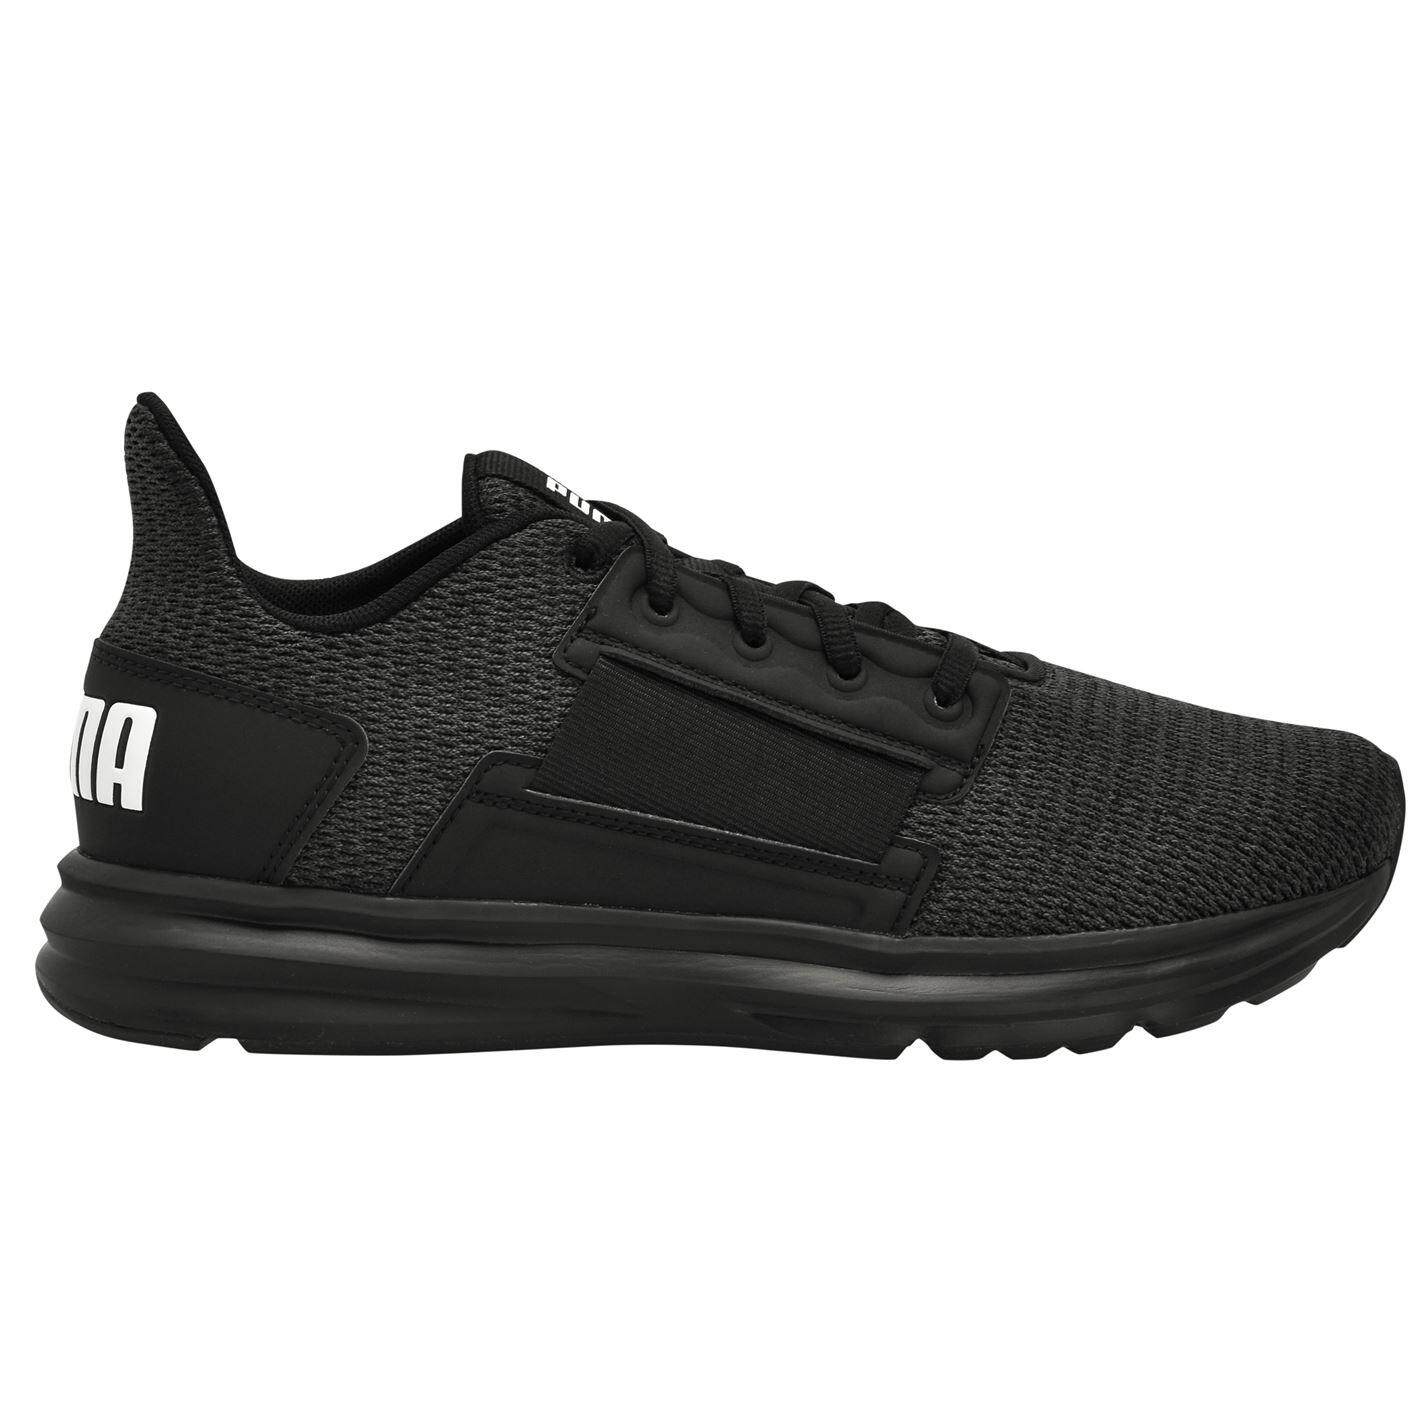 a1e47530ce0 Puma Men's Sports Shoes - Running Shoes price in Malaysia - Best ...